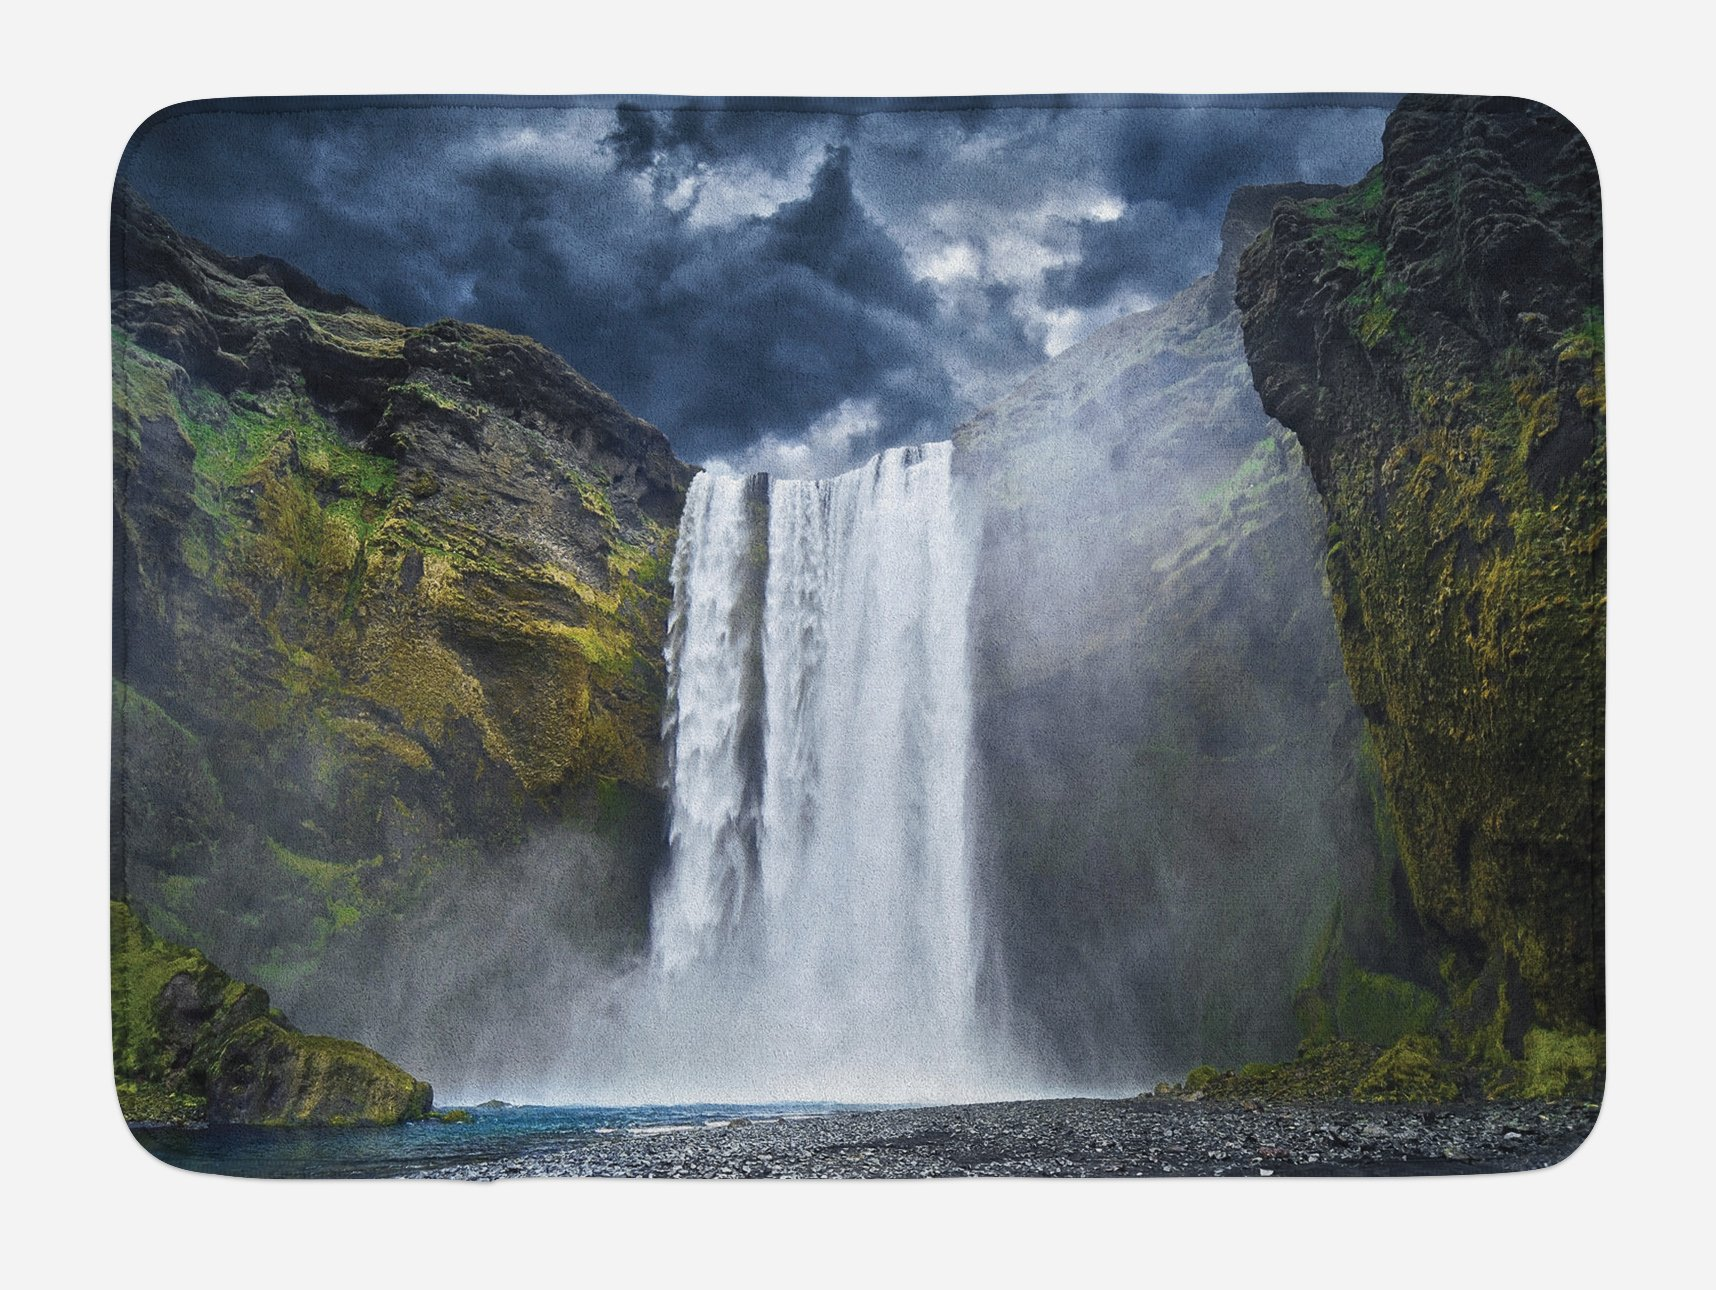 Ambesonne Waterfall Bath Mat, Waterfall and Grand Cliffs in Northern America Force of Nature Art Print, Plush Bathroom Decor Mat with Non Slip Backing, 29.5 W X 17.5 W Inches, Green Blue White